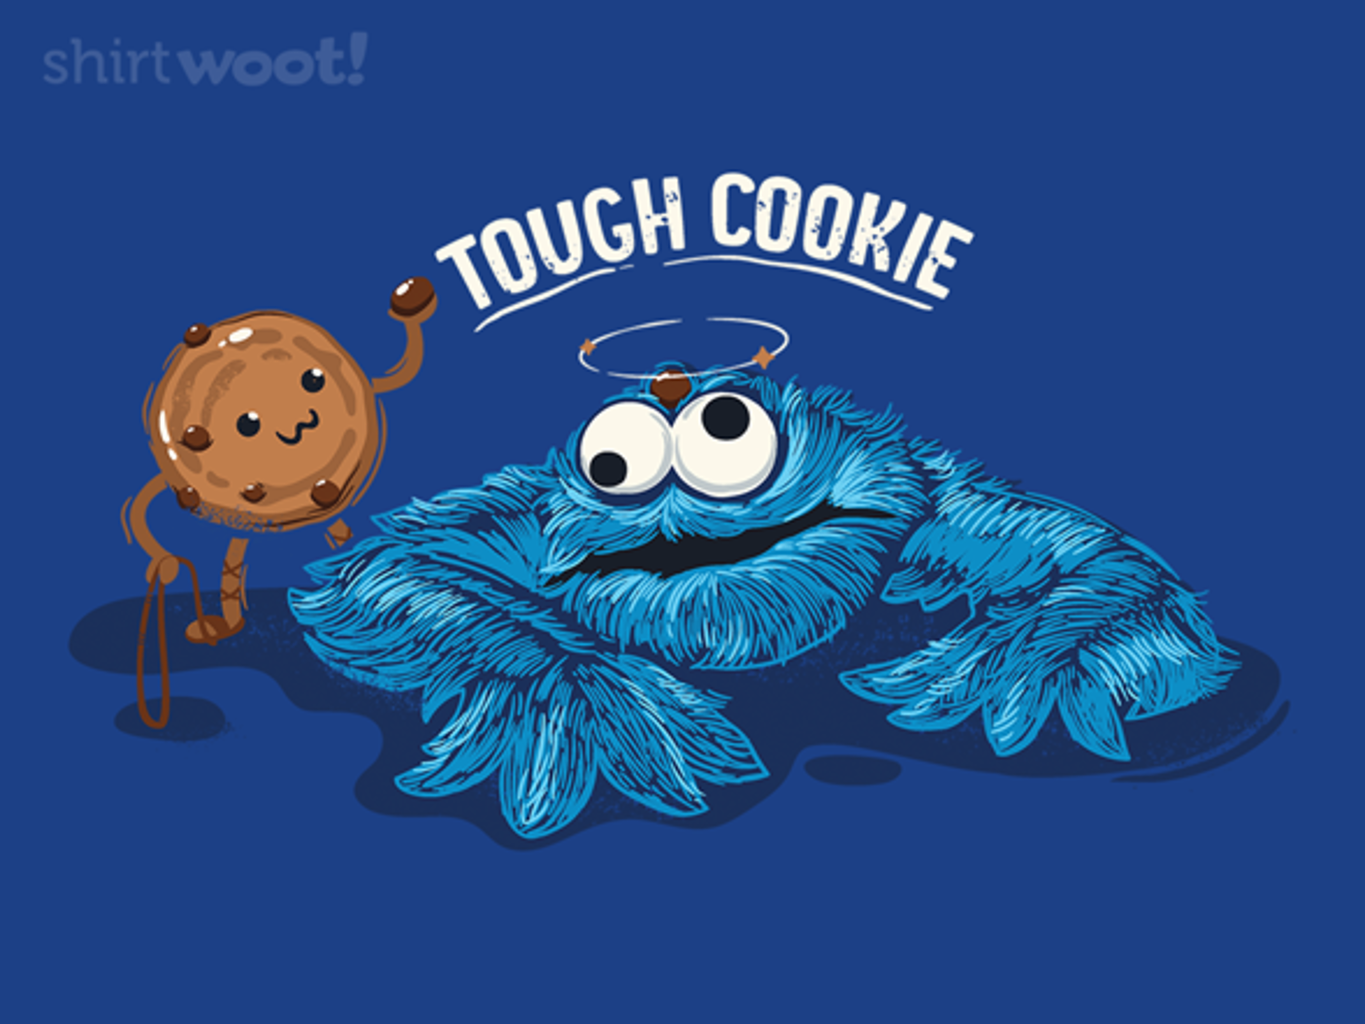 Woot!: That's One Tough Cookie